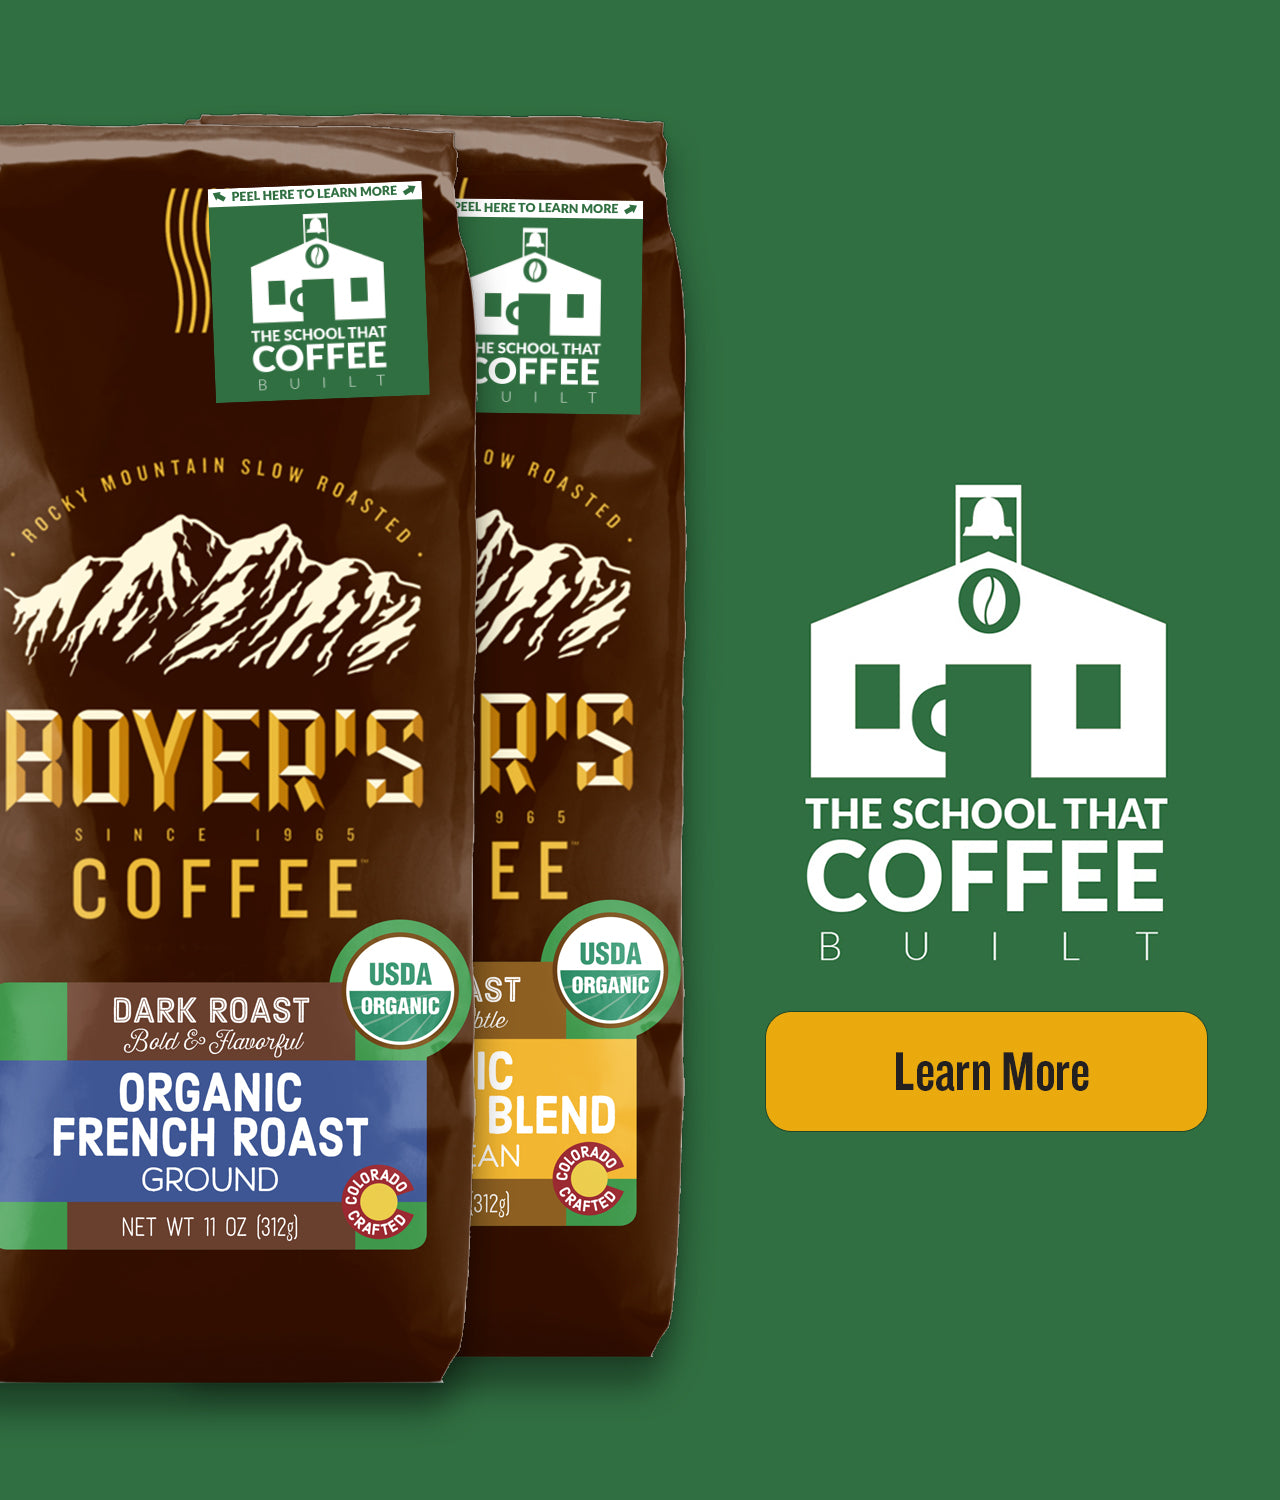 Come Celebrate National Coffee Day @ Boyer's Cafe on Sept 29, 2017